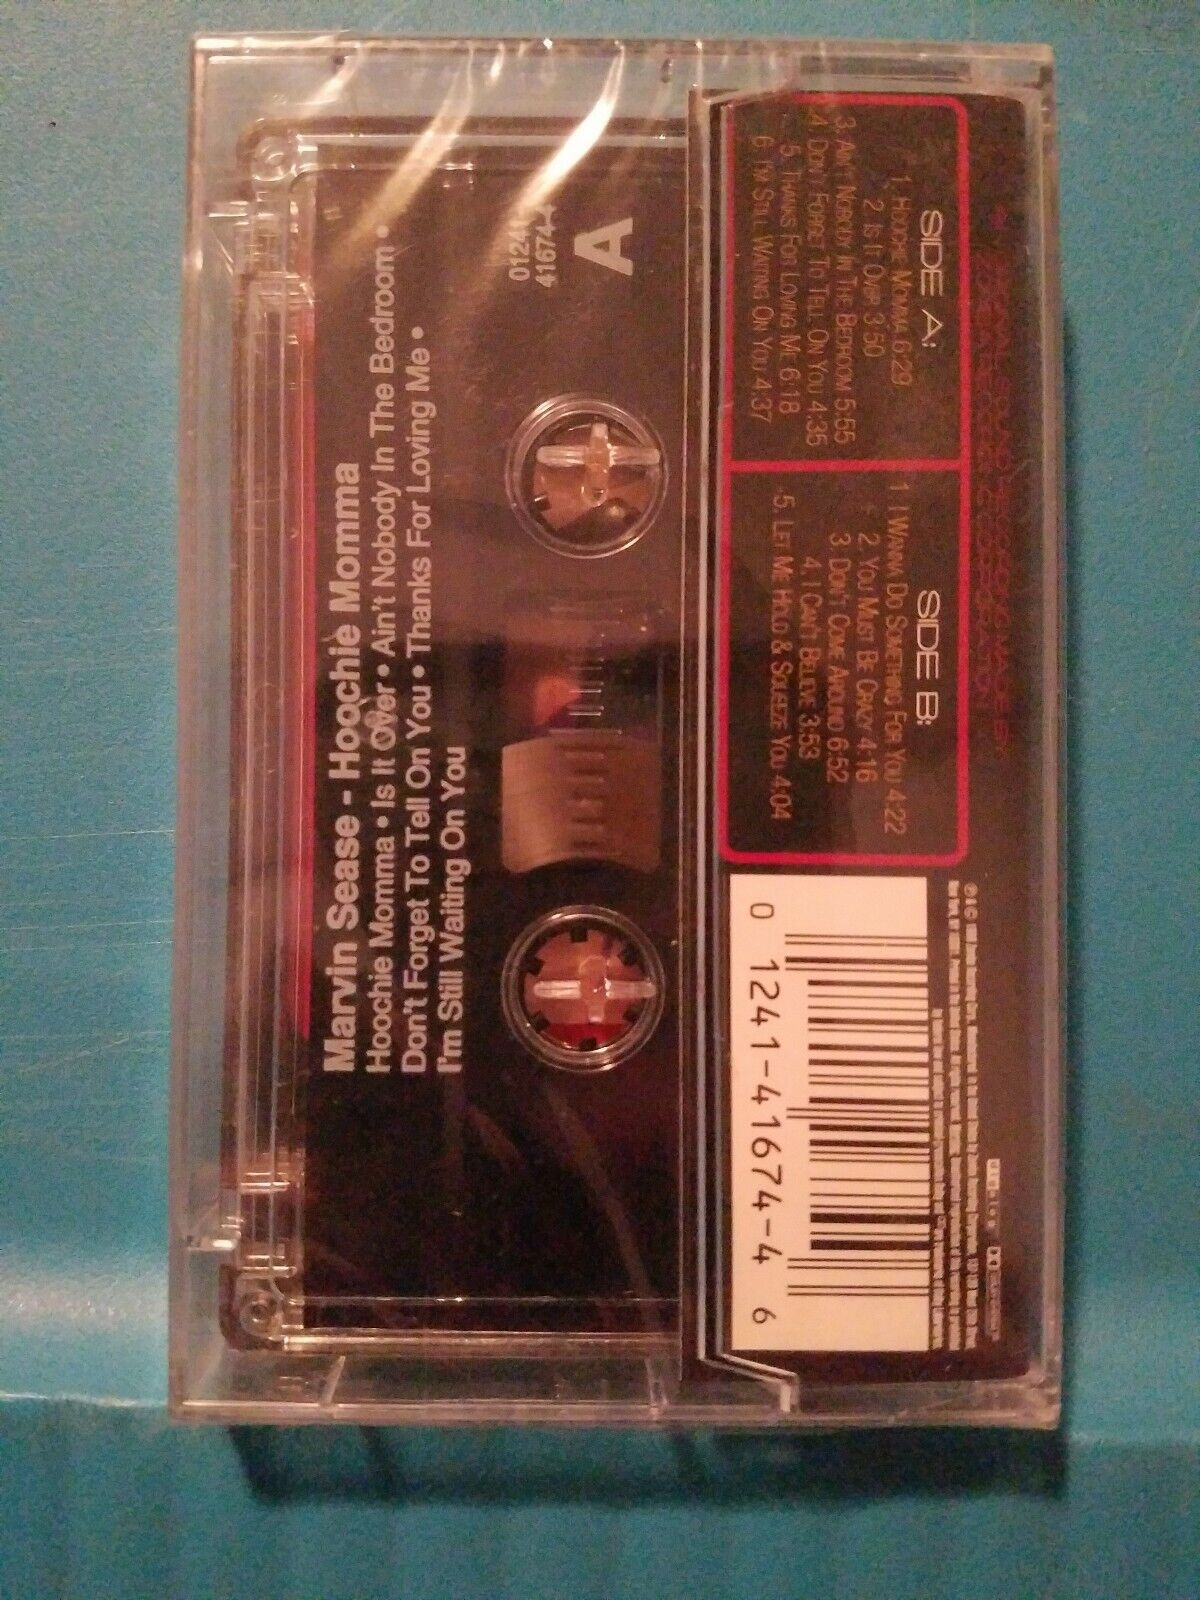 Marvin Sease Hoochie Momma New Sealed Cassette Ebay See all 13 formats and editions hide other formats and editions. ebay